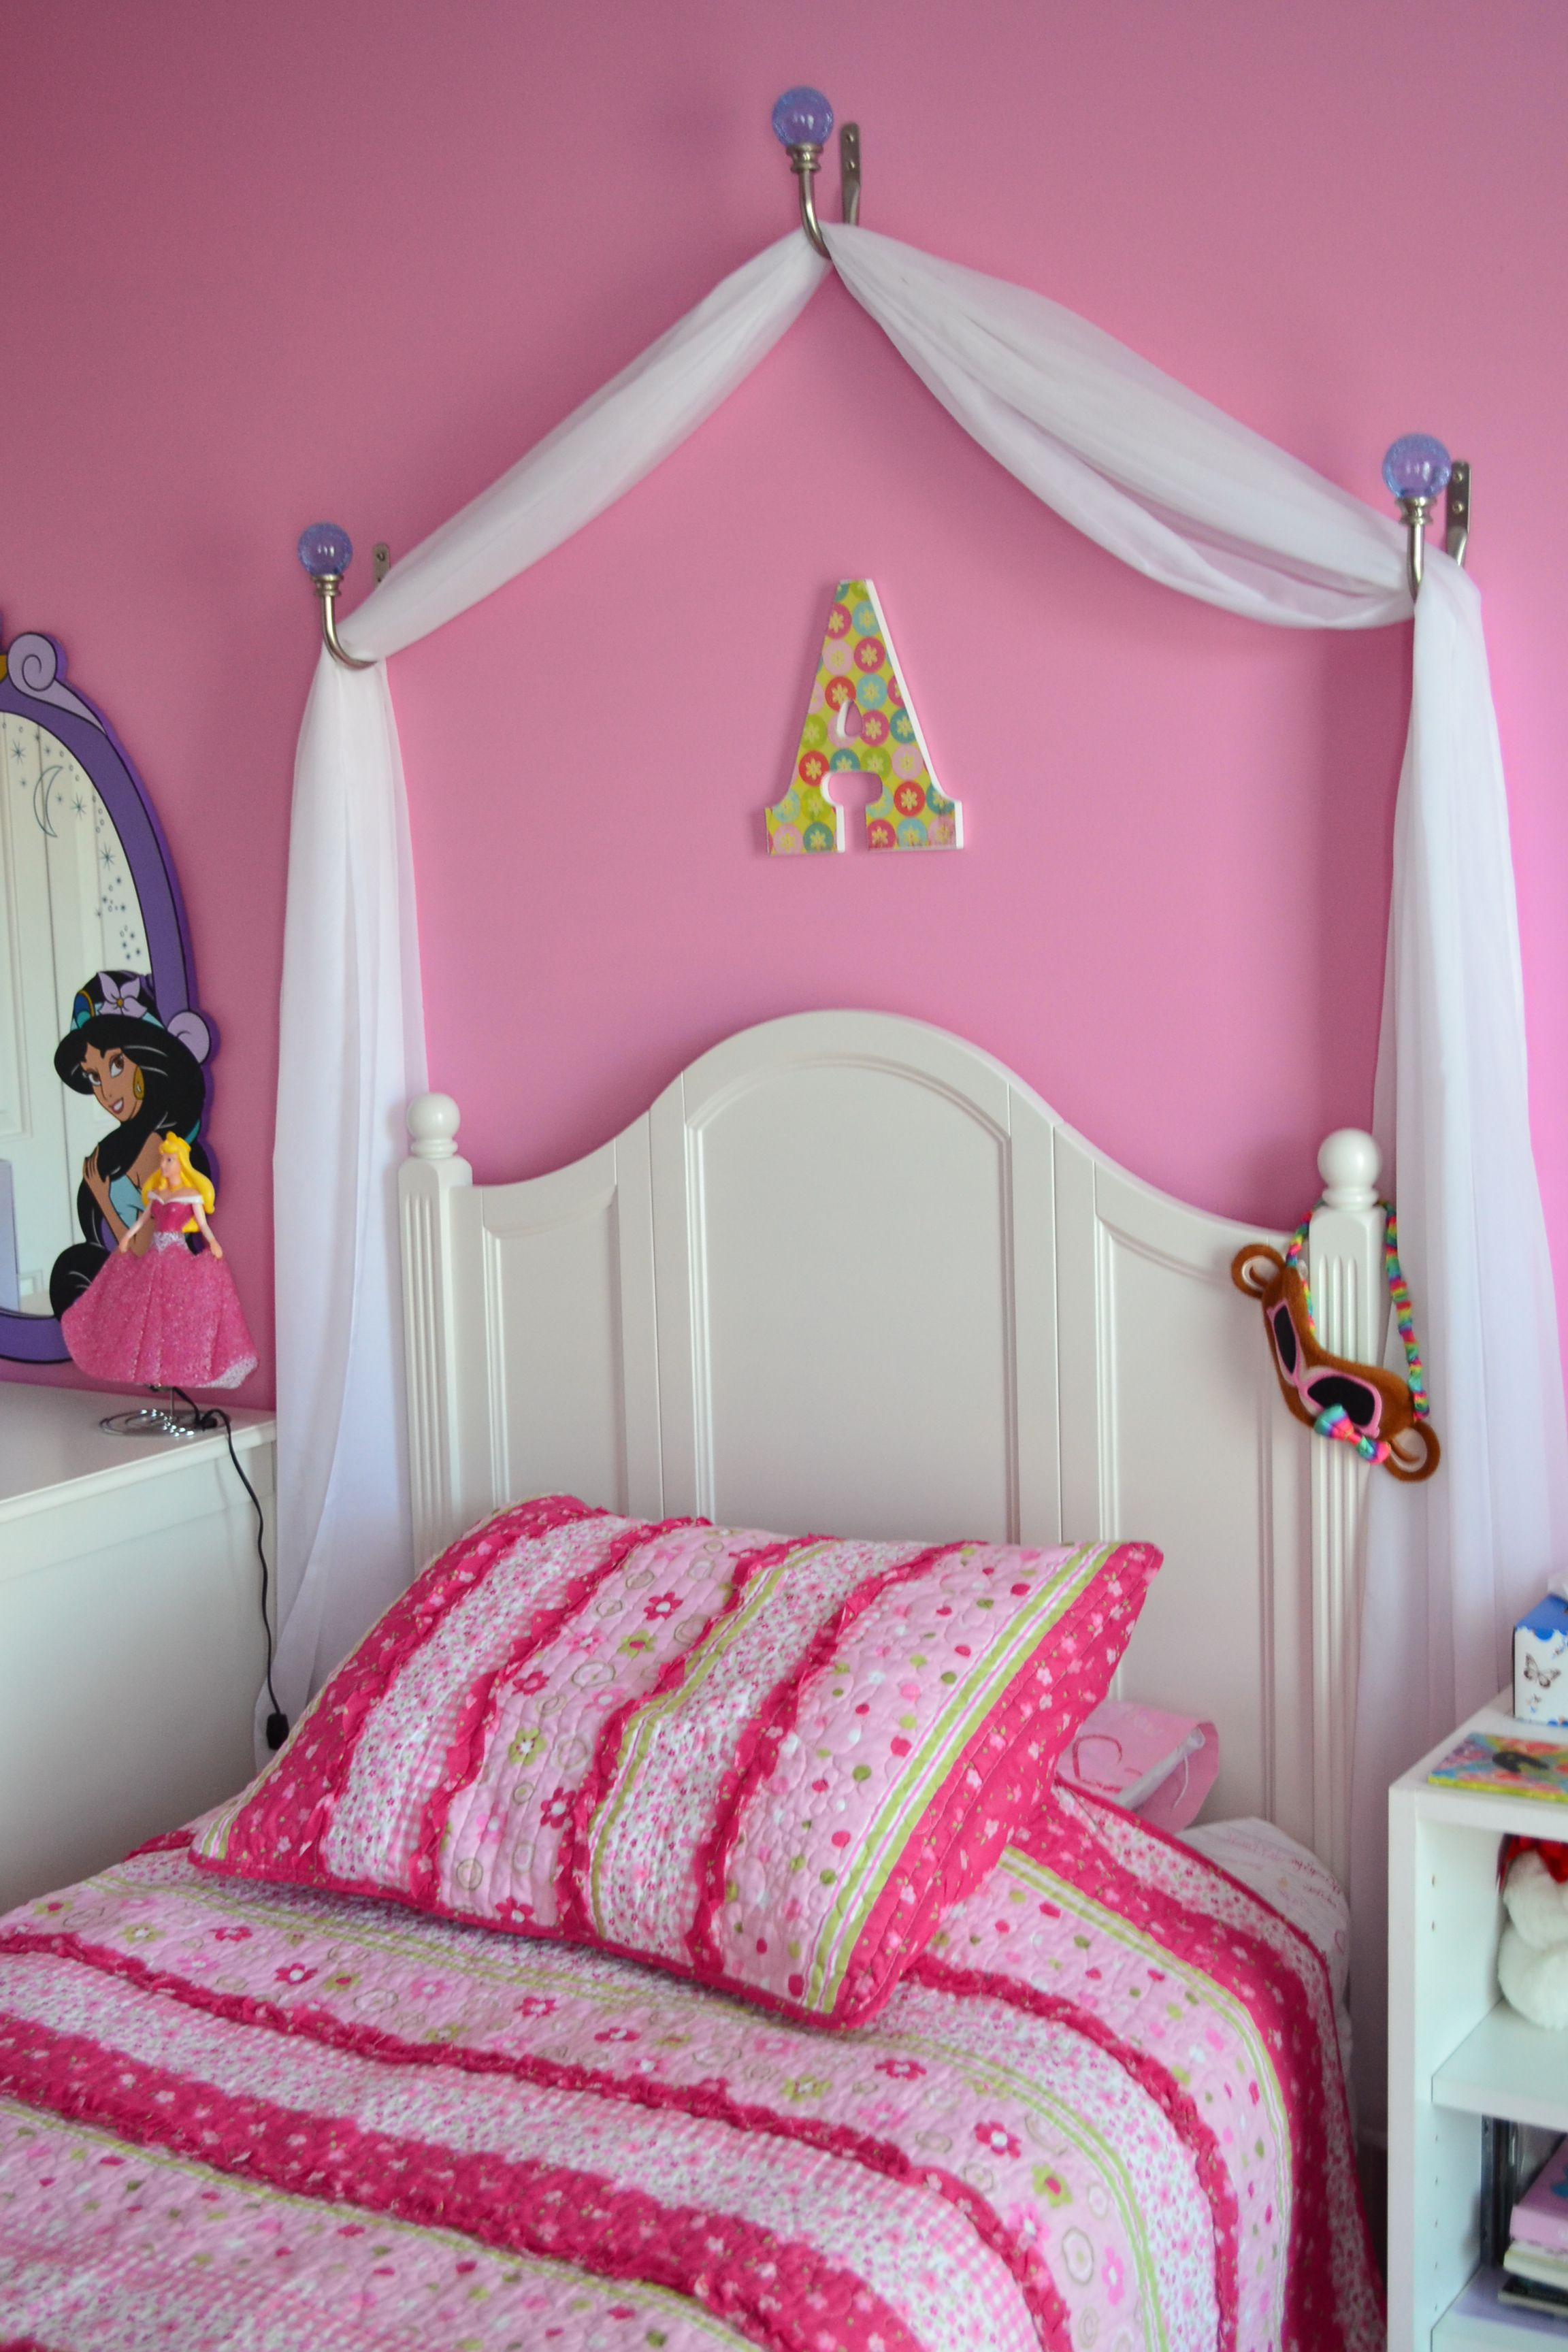 How to make a bed canopy for girls - Creating A Faux Canopy For Princess Bed